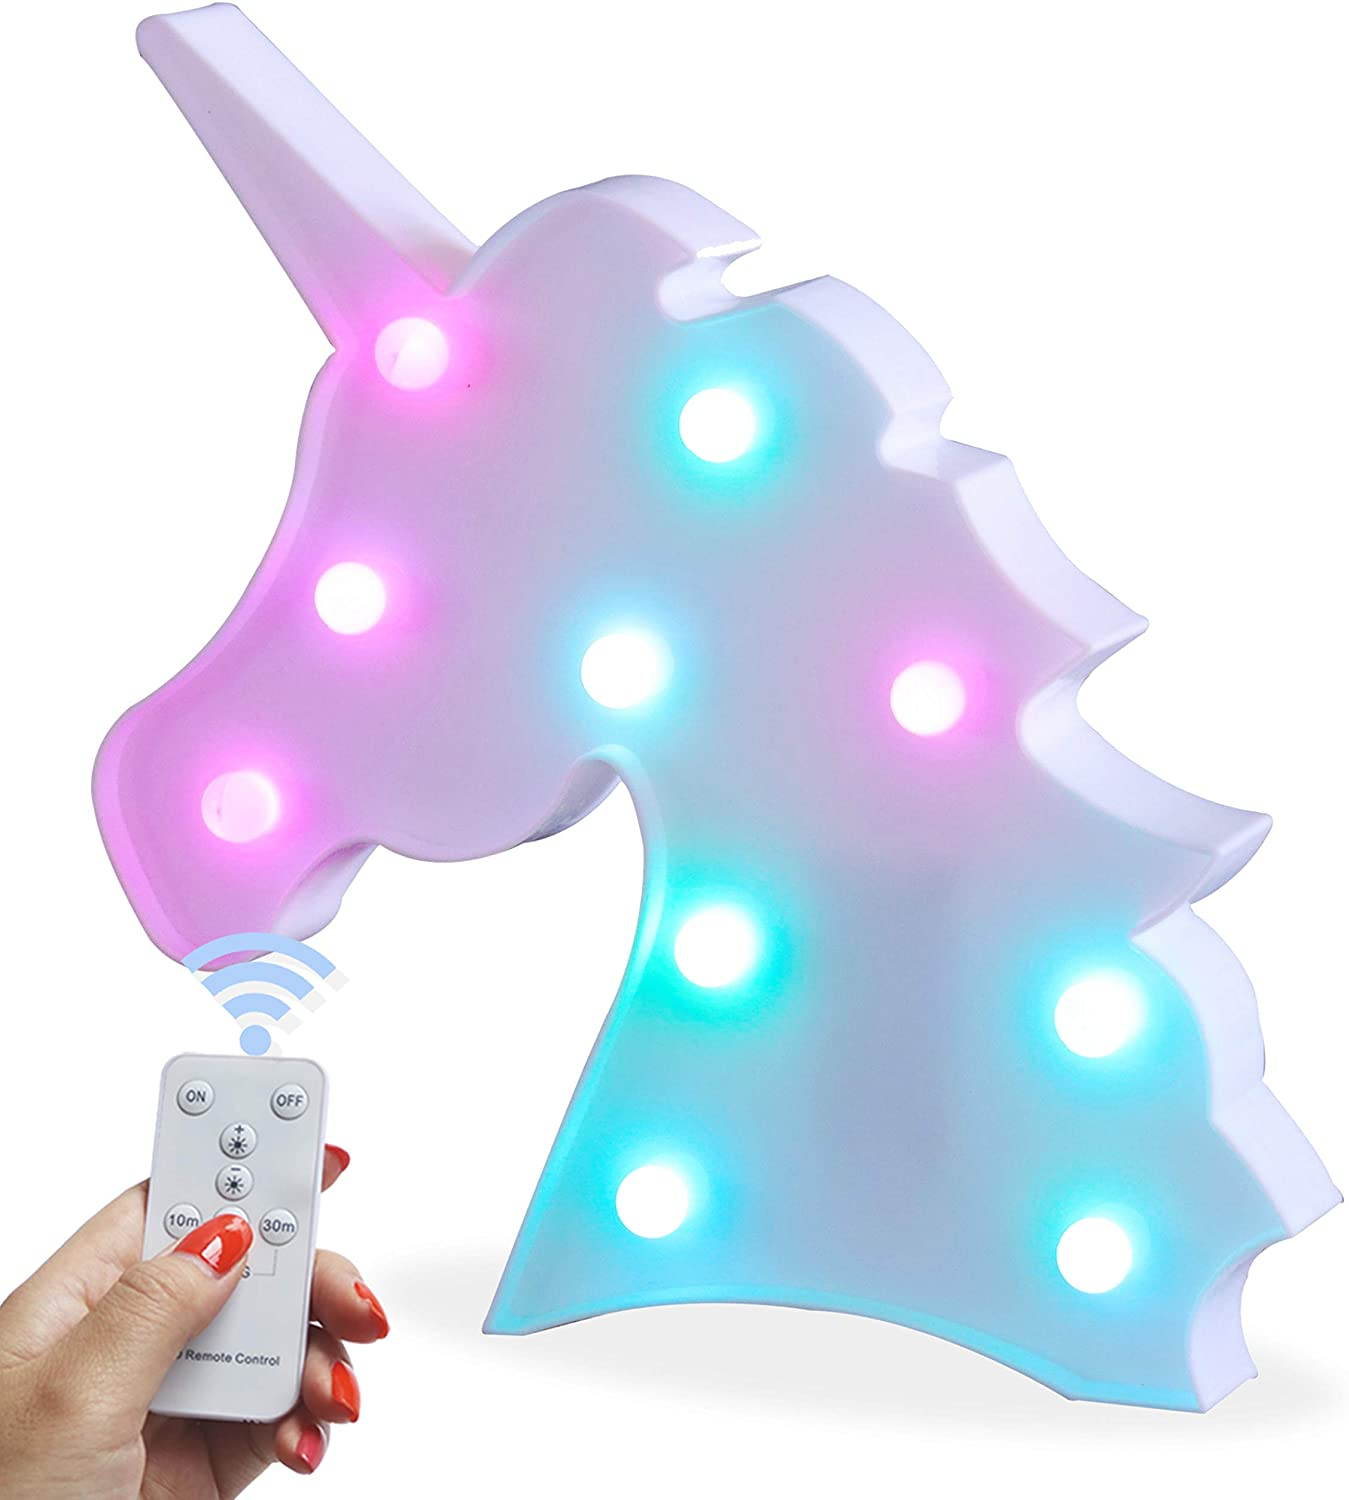 Battery Operated Night Light LED Marquee Sign with Wireless Remote Control for Kids' Room, Bedroom, Gift, Party, Home Decorations (Unicorn Head Colorful)